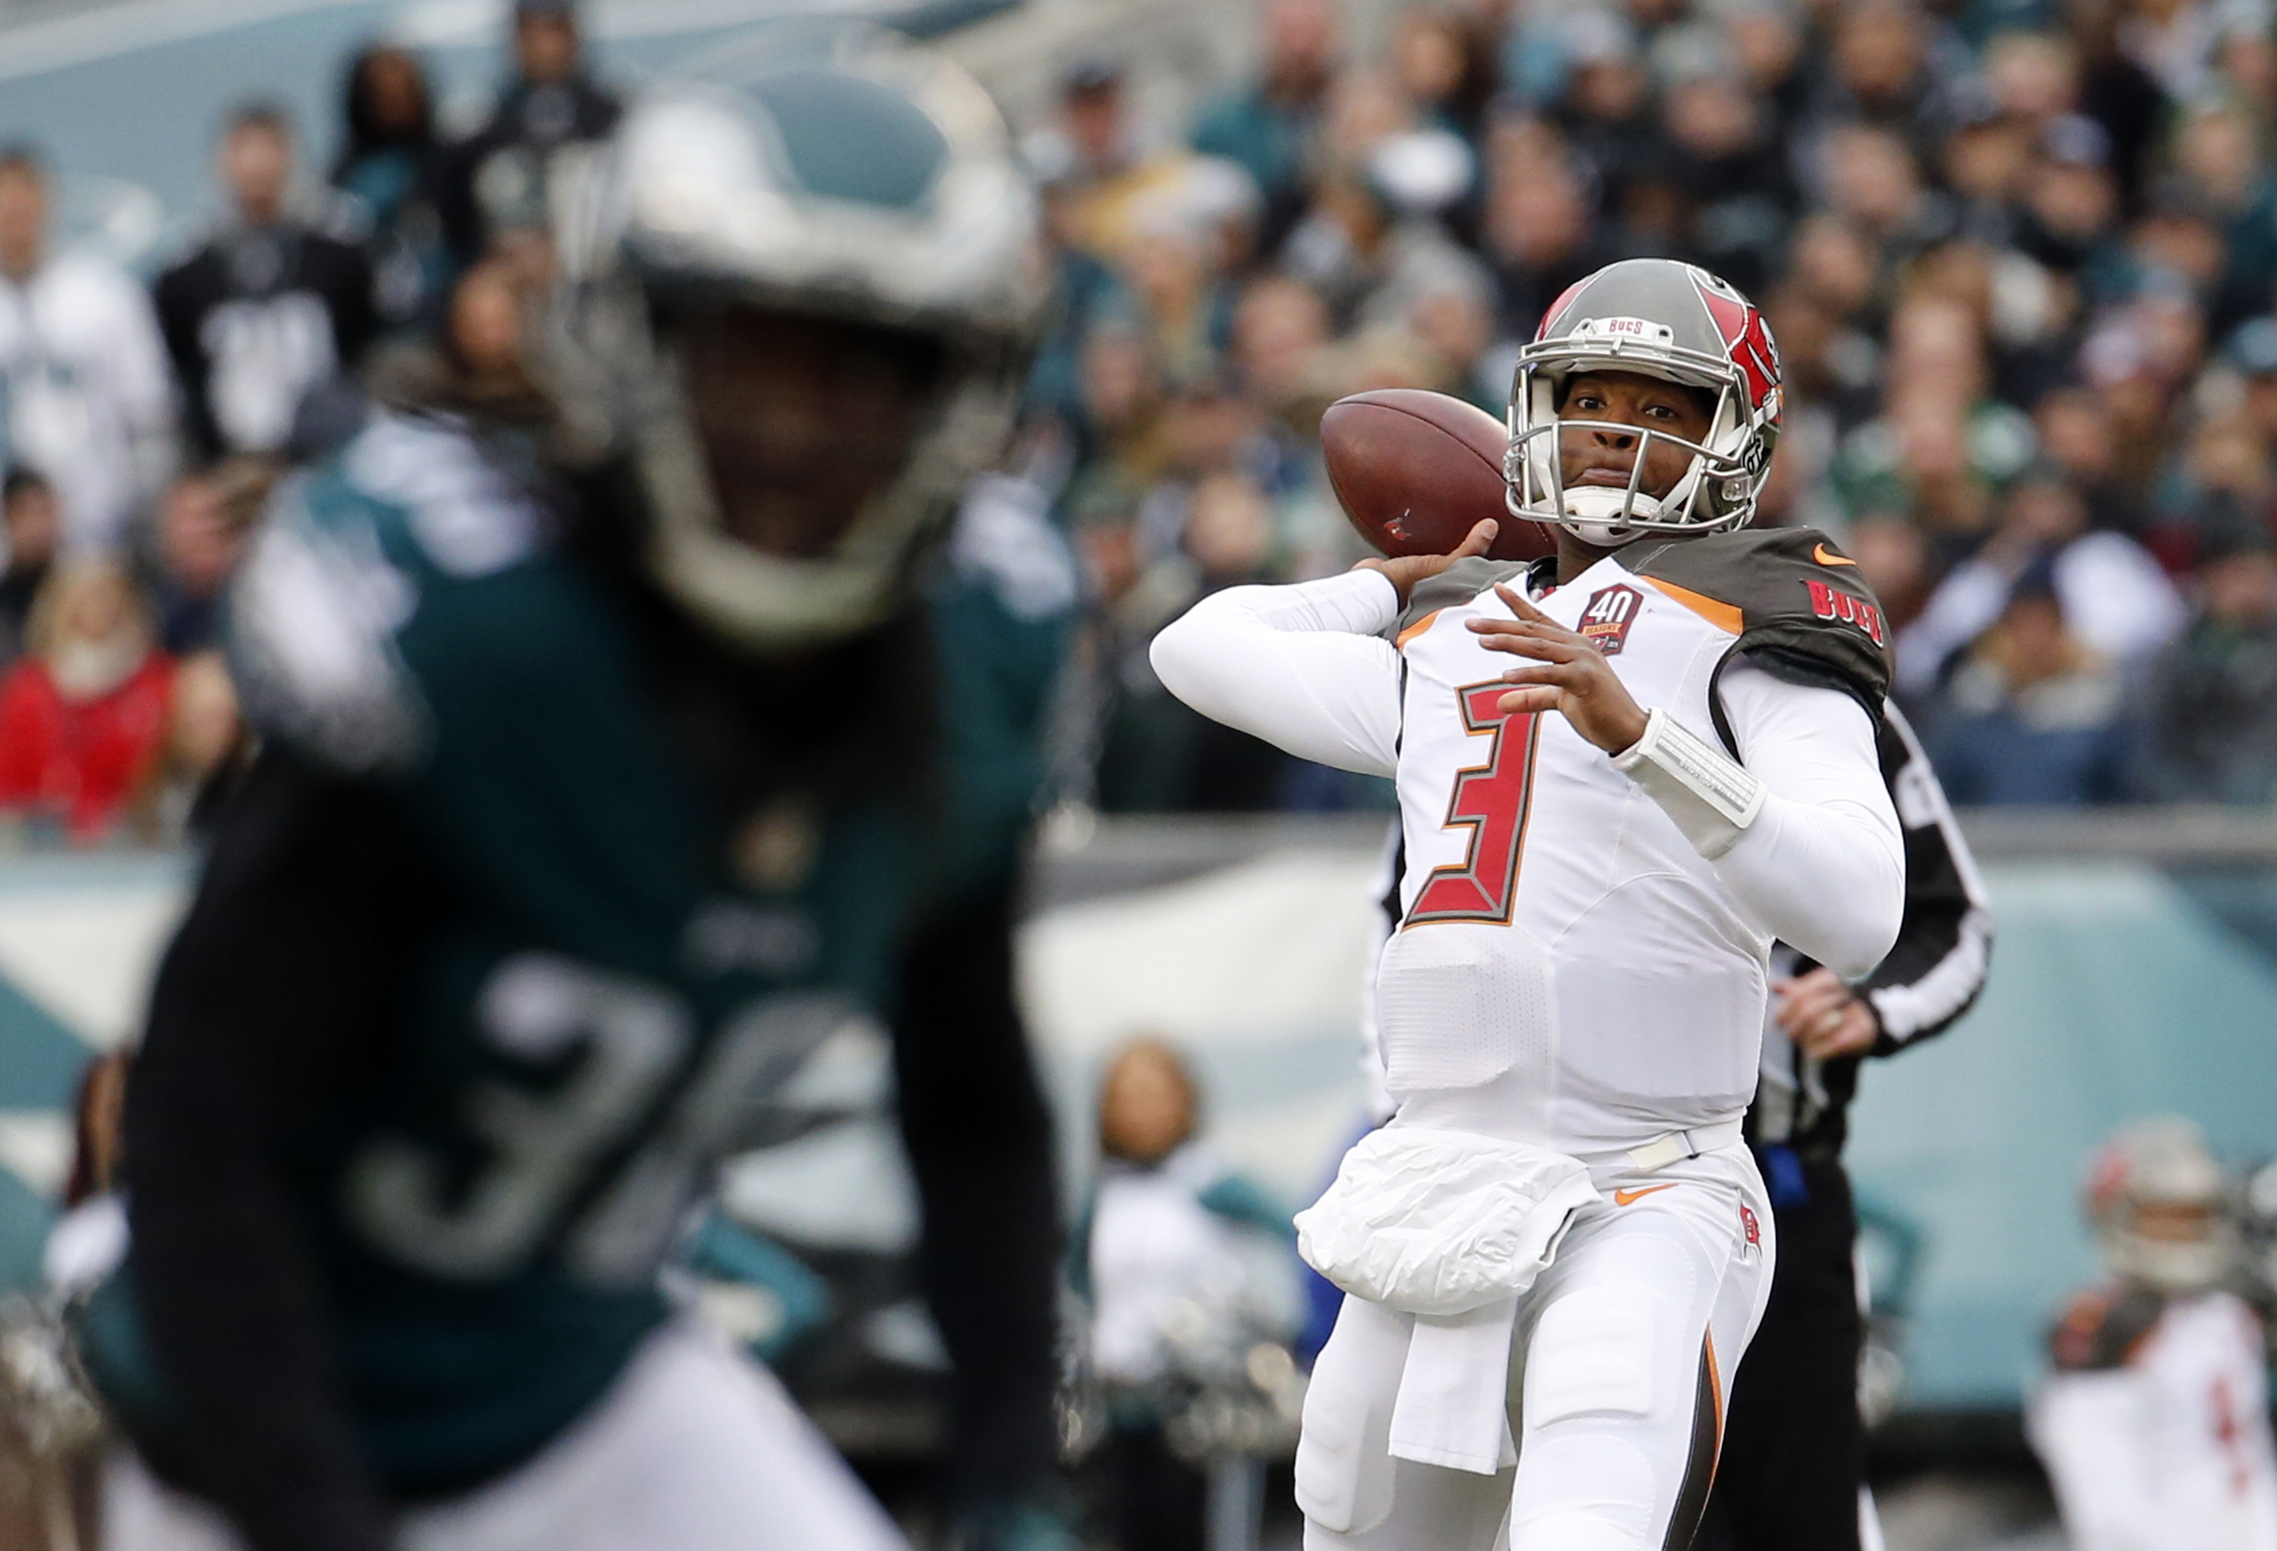 Tampa Bay Buccaneers' Jameis Winston passes during the first half of an NFL football game against the Philadelphia Eagles, Sunday, Nov. 22, 2015, in Philadelphia. (AP Photo/Julio Cortez)